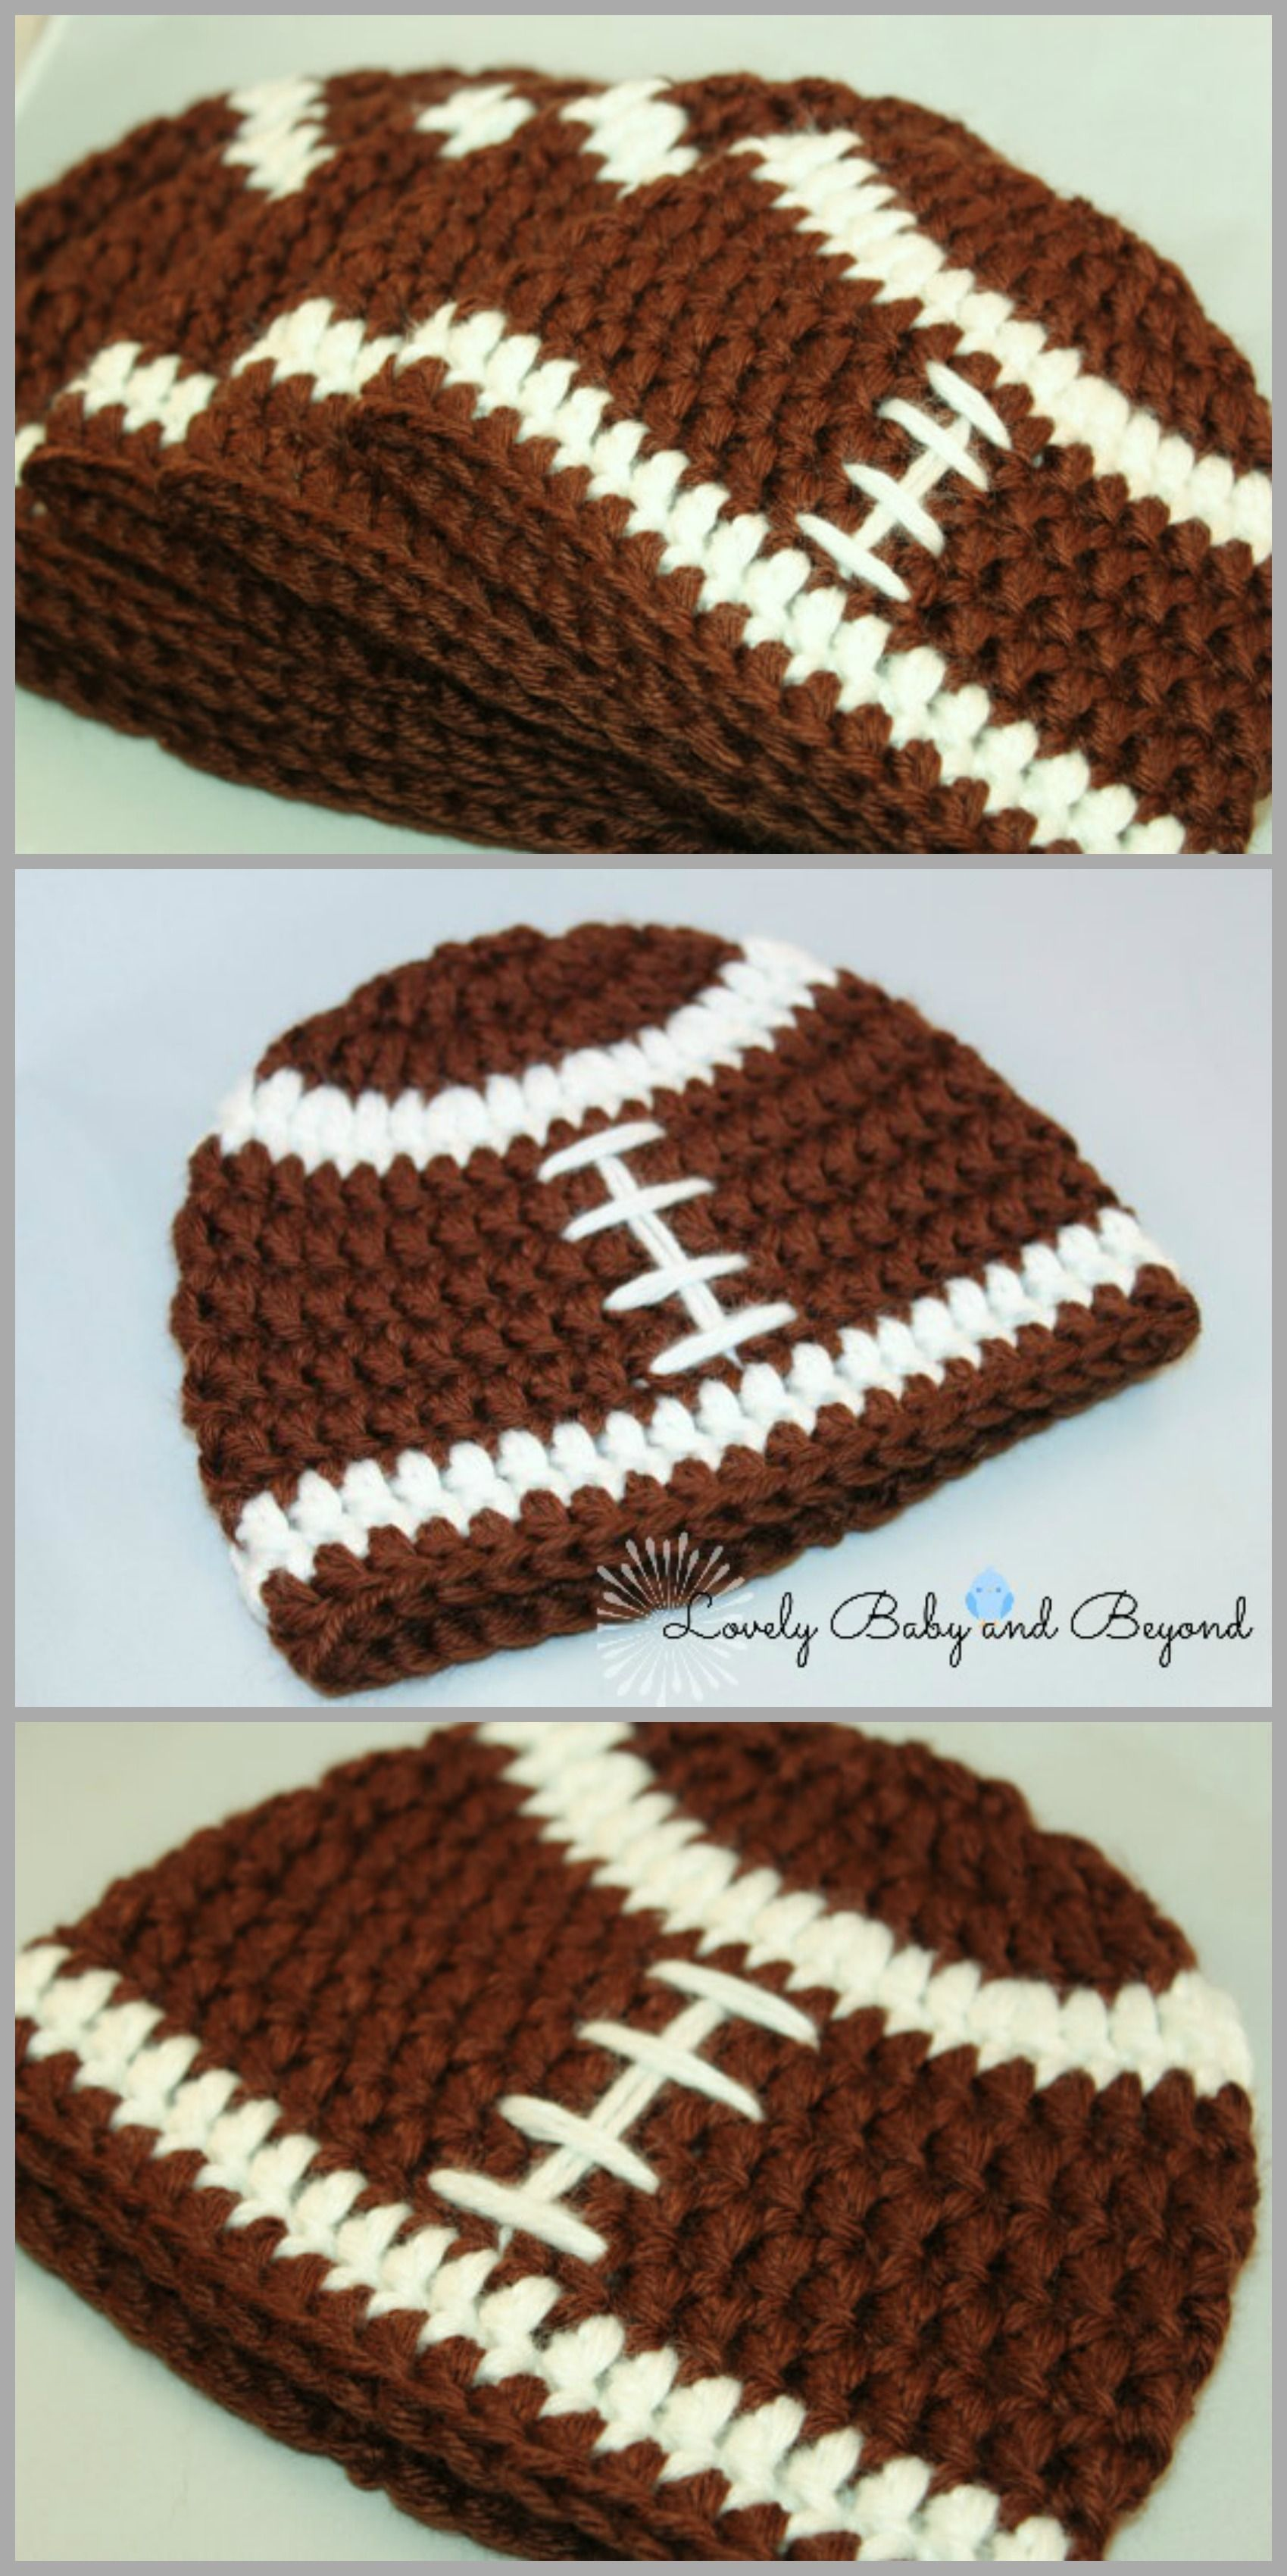 Get a free crochet pattern to make your own chunky football beanie get a free crochet pattern to make your own chunky football beanie in 0 3 bankloansurffo Choice Image